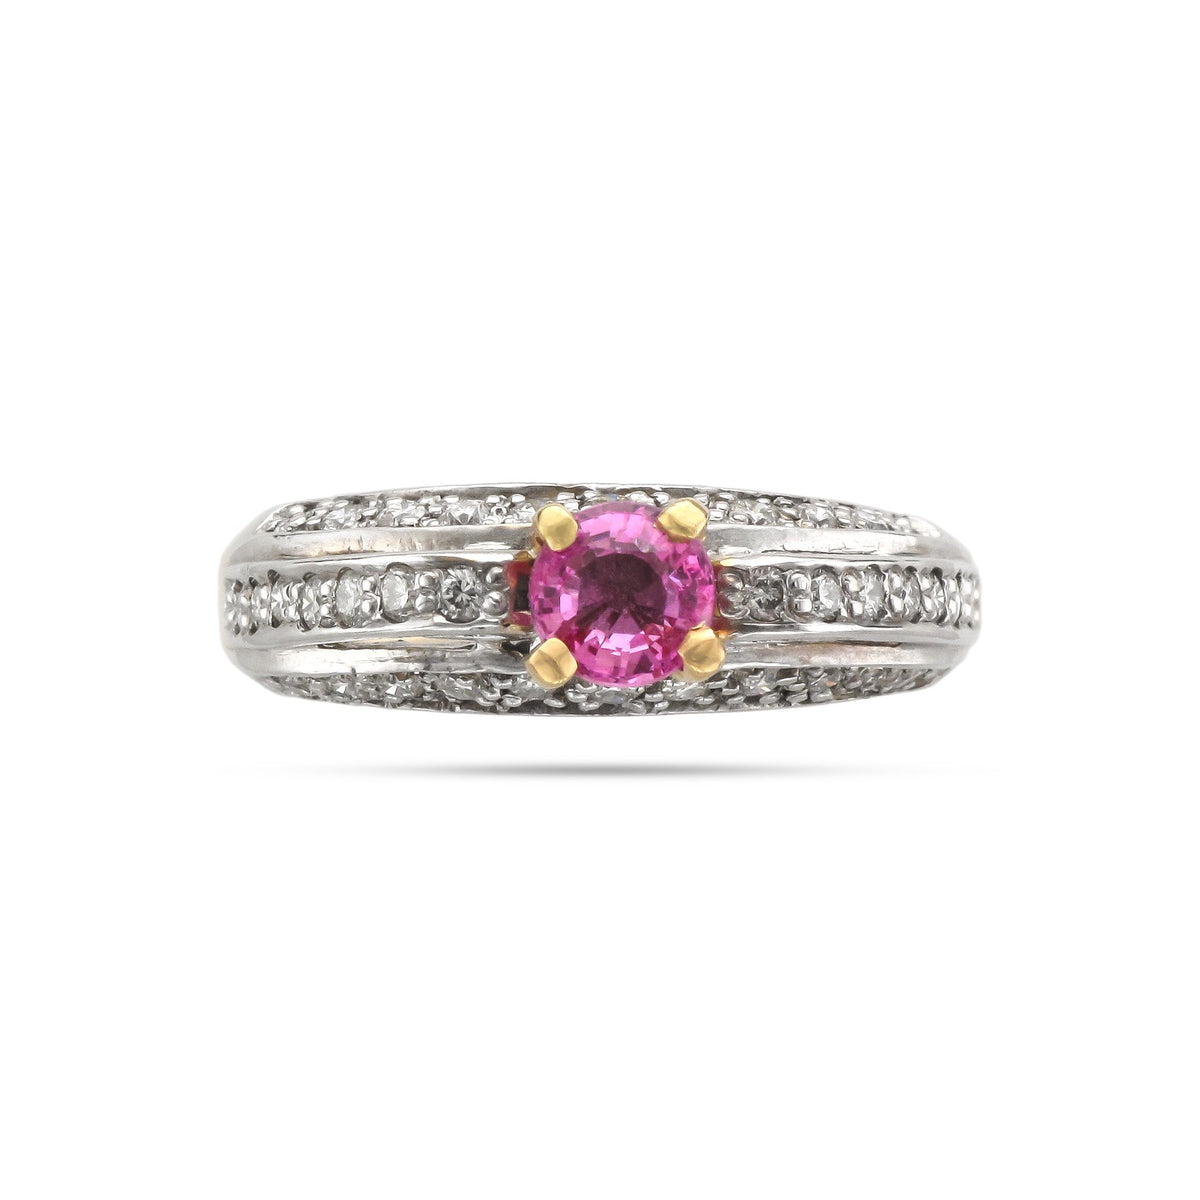 Vintage 18ct White & Yellow Gold Pink Sapphire Ring